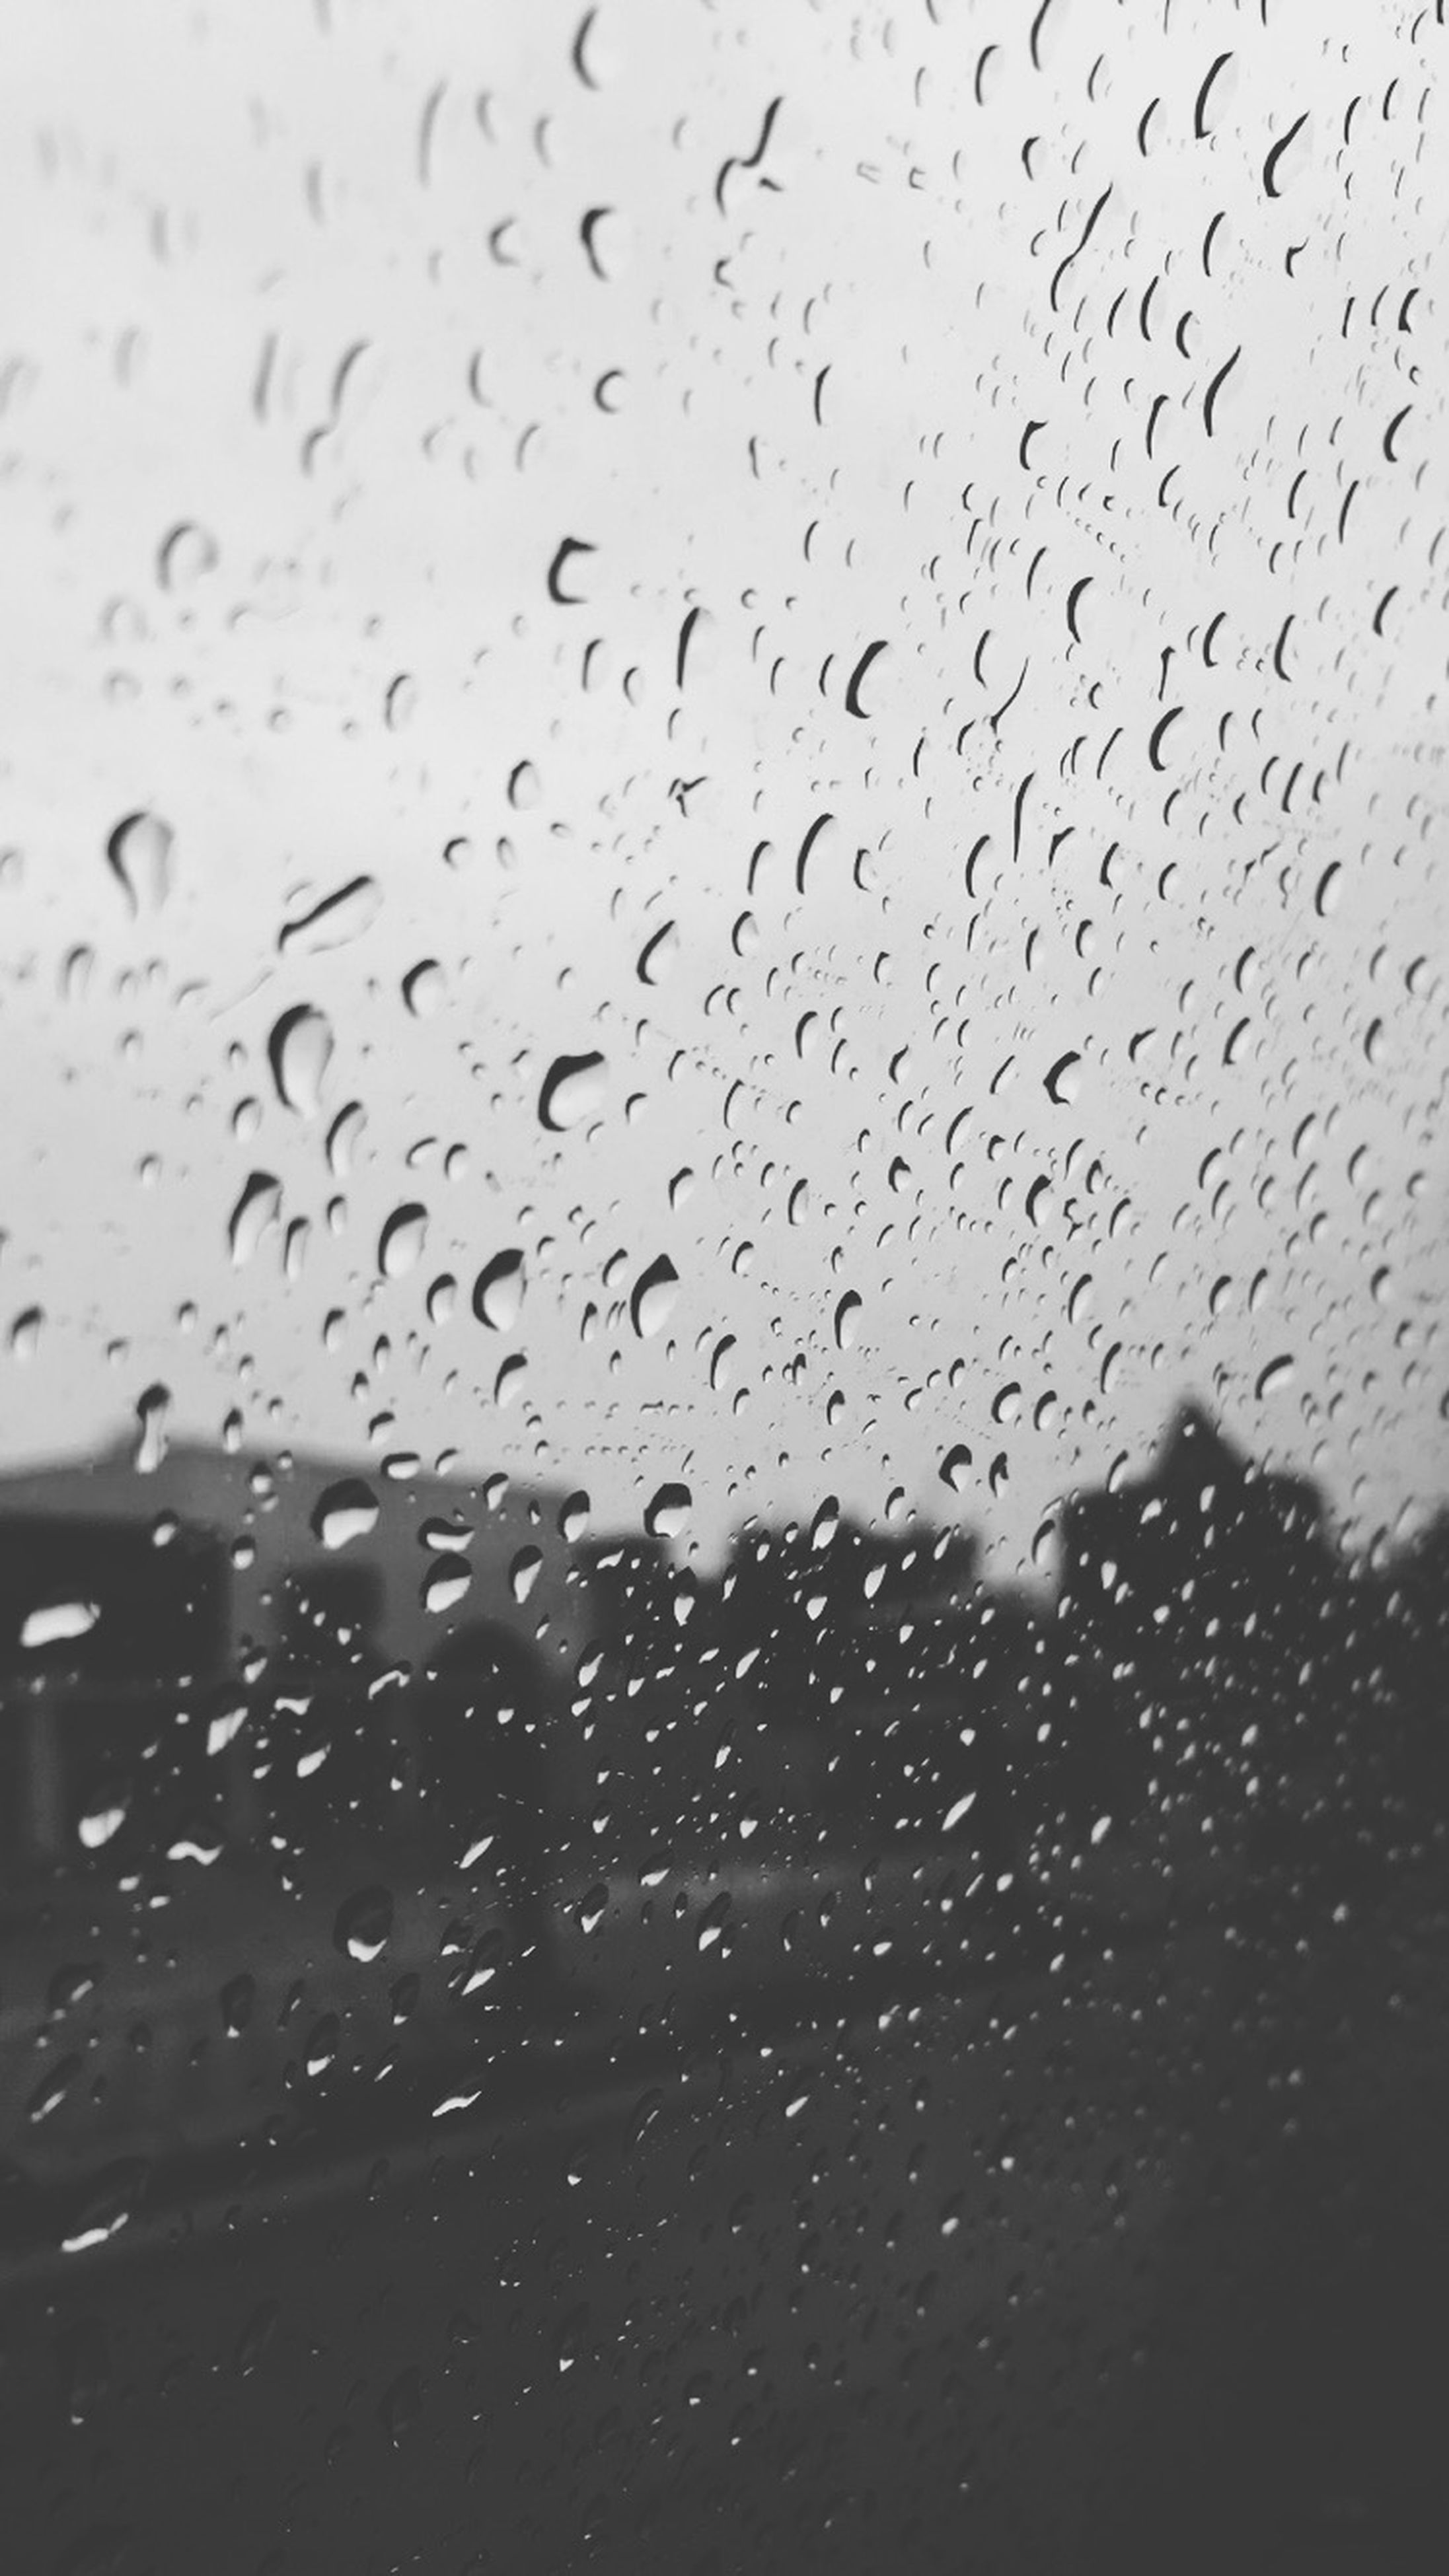 drop, window, wet, indoors, transparent, glass - material, water, rain, weather, season, raindrop, glass, backgrounds, focus on foreground, full frame, sky, close-up, looking through window, no people, day